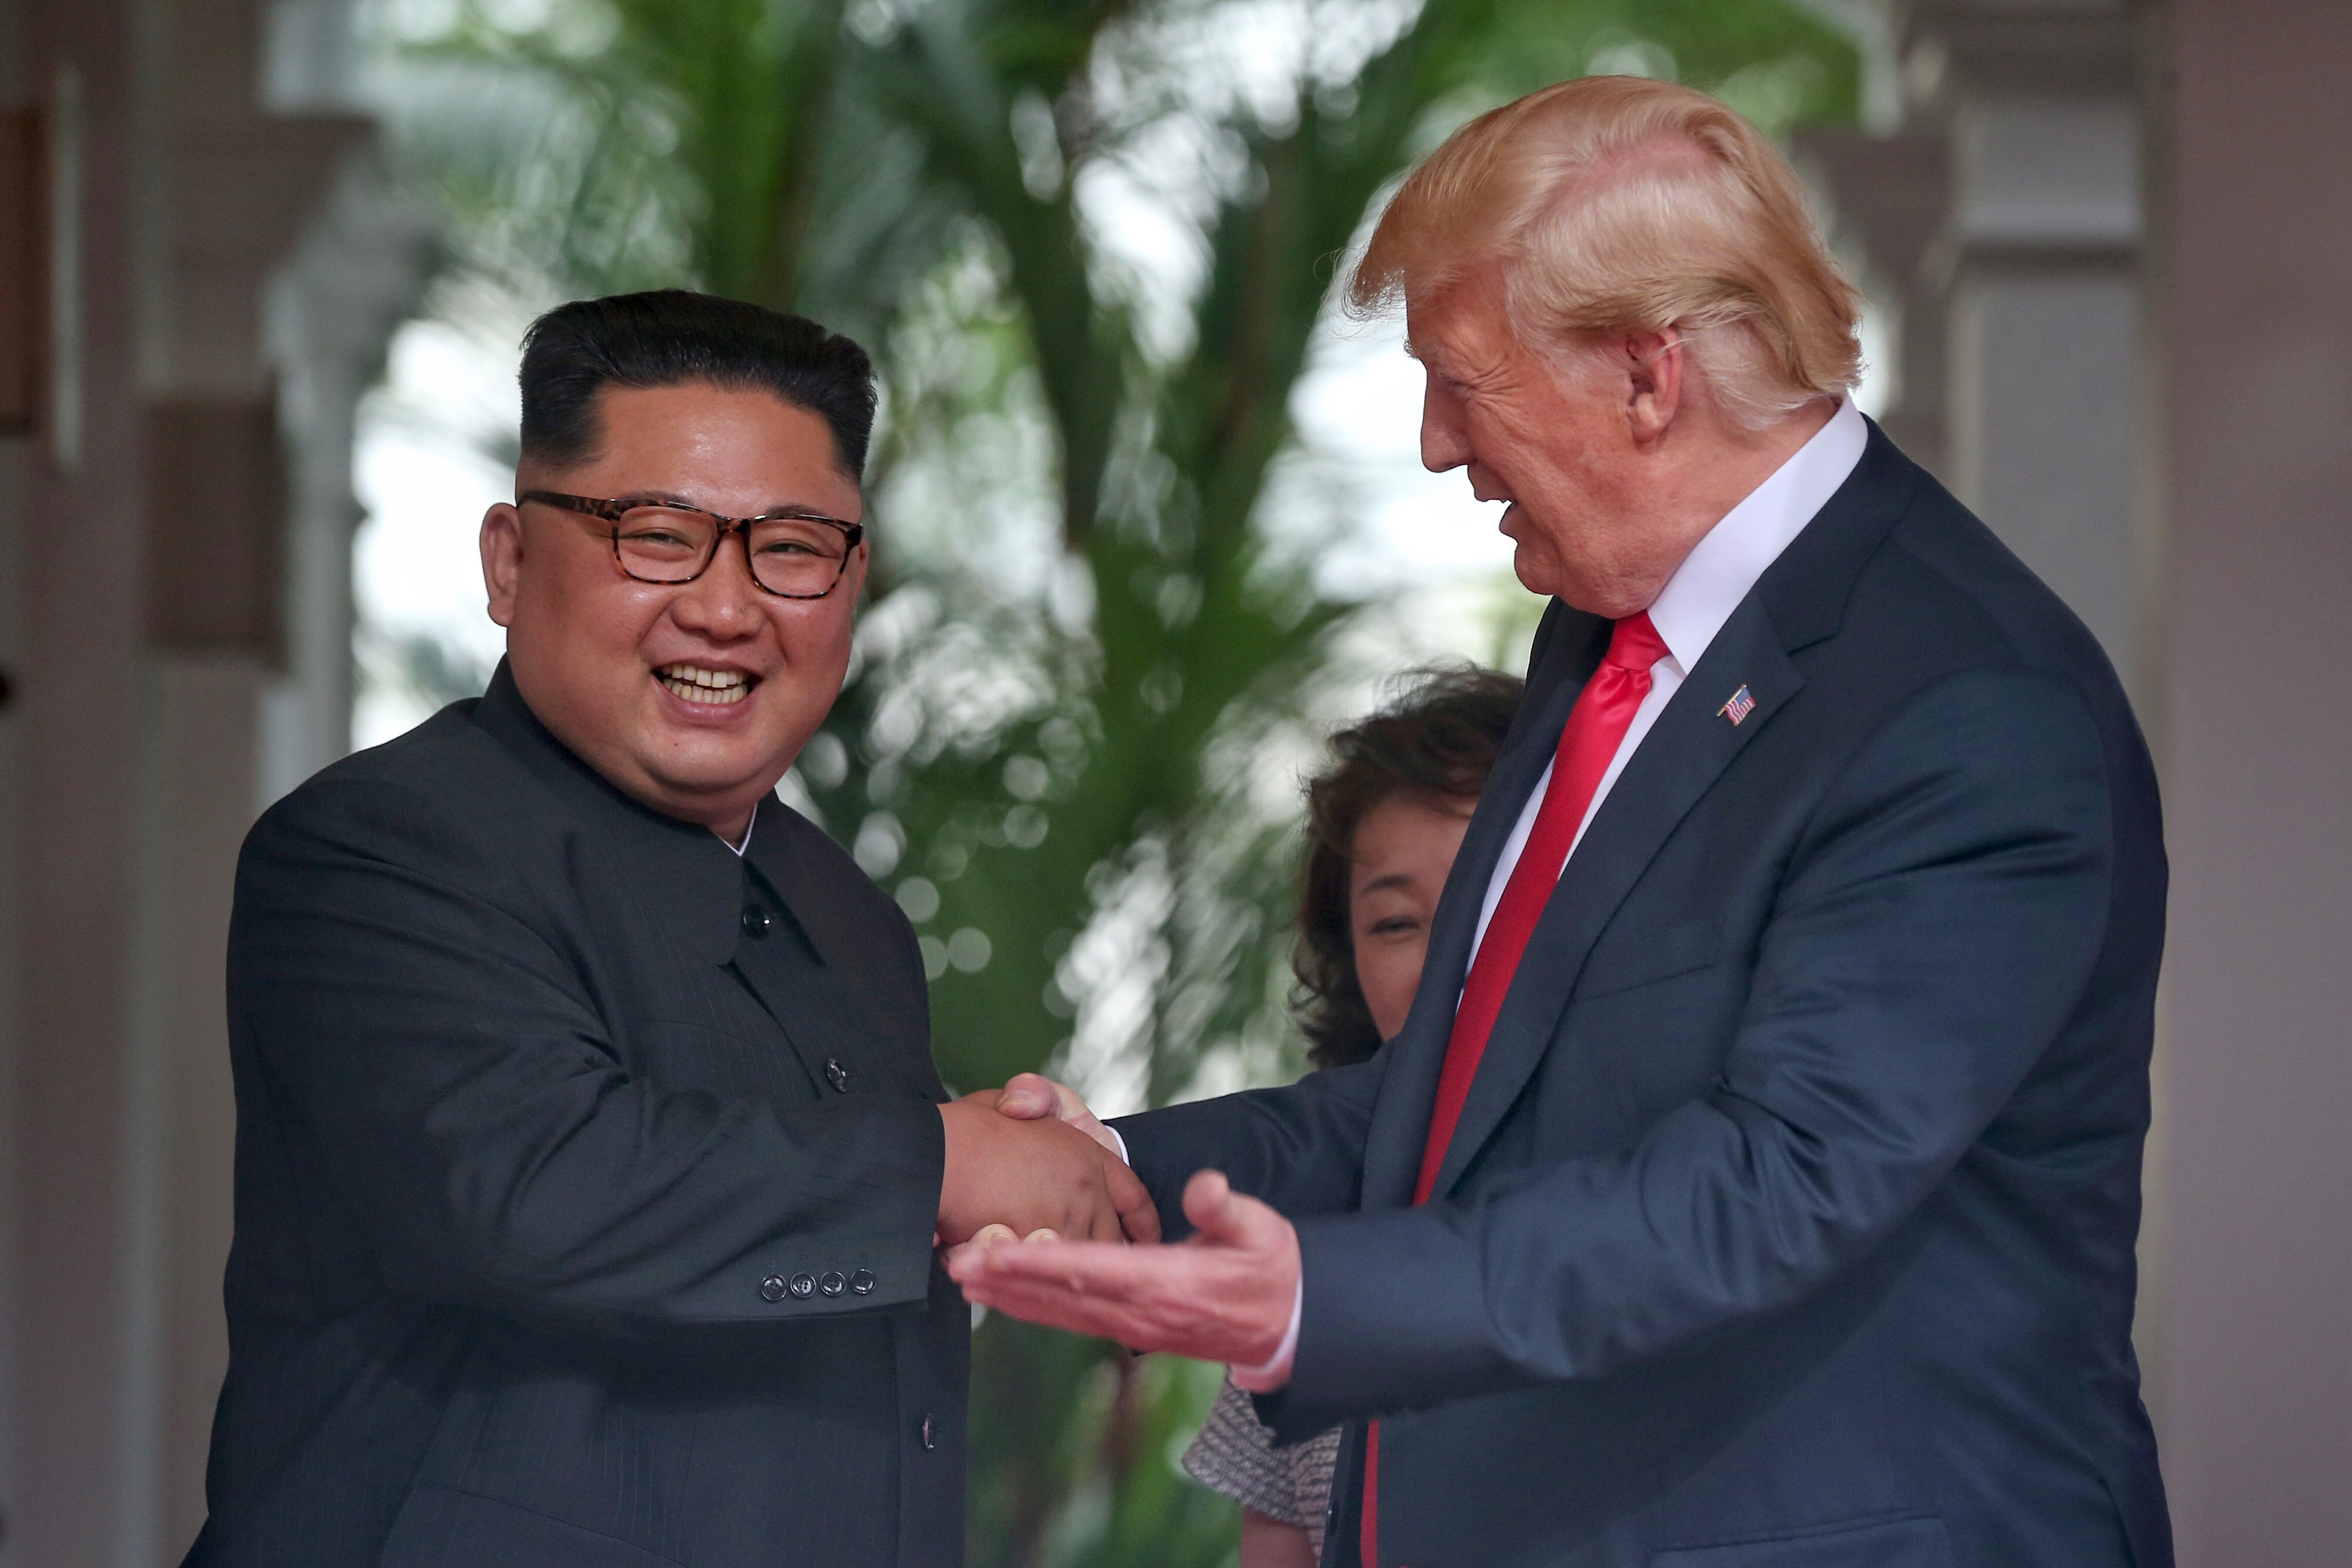 President Donald Trump (R) shakes hands with North Korea's leader Kim Jong Un (L) at the start of their historic U.S.-North Korea summit, at the Capella Hotel on Sentosa island in Singapore on June 12, 2018.